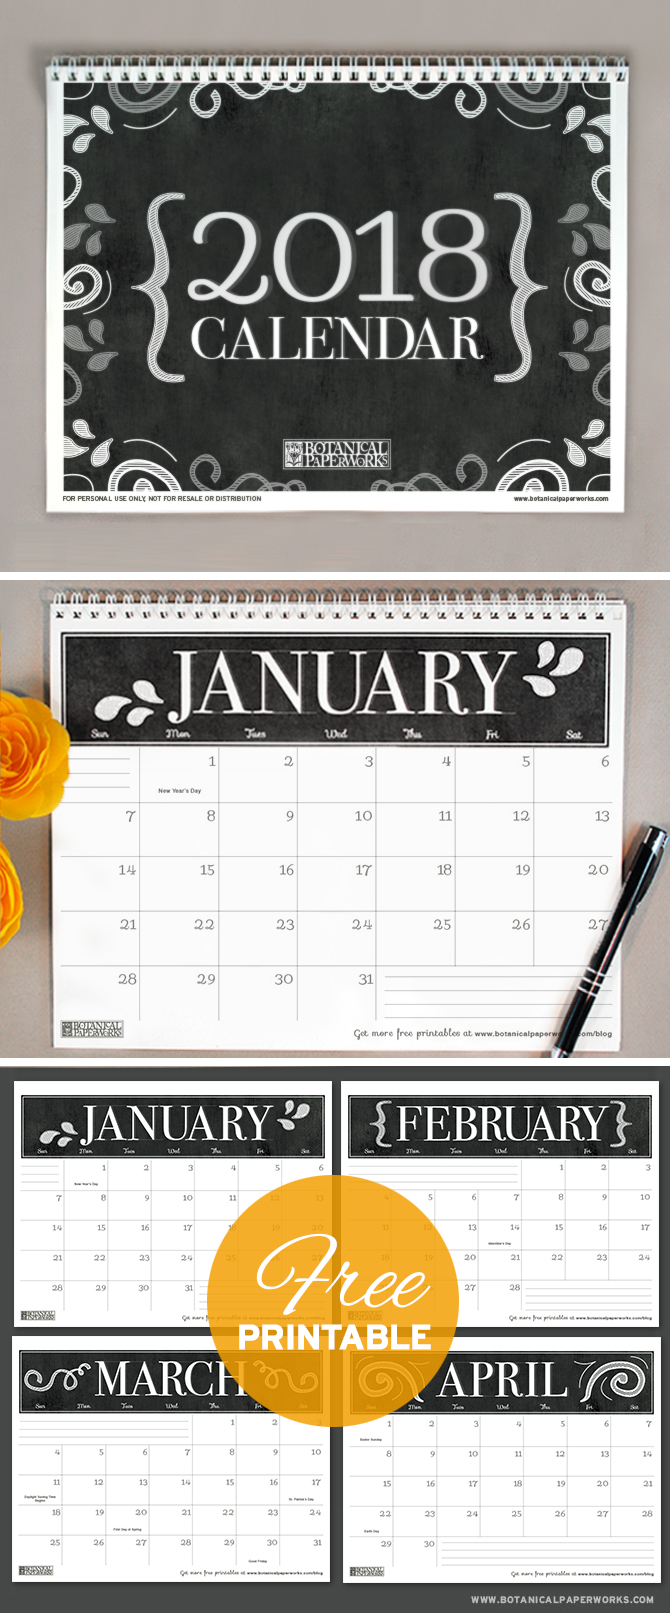 With a sophisticated black and white chalkboard design, this 2017 free printable calendar is perfect for home or office use. See more designs and download your favorite 2017 calendar on our blog!